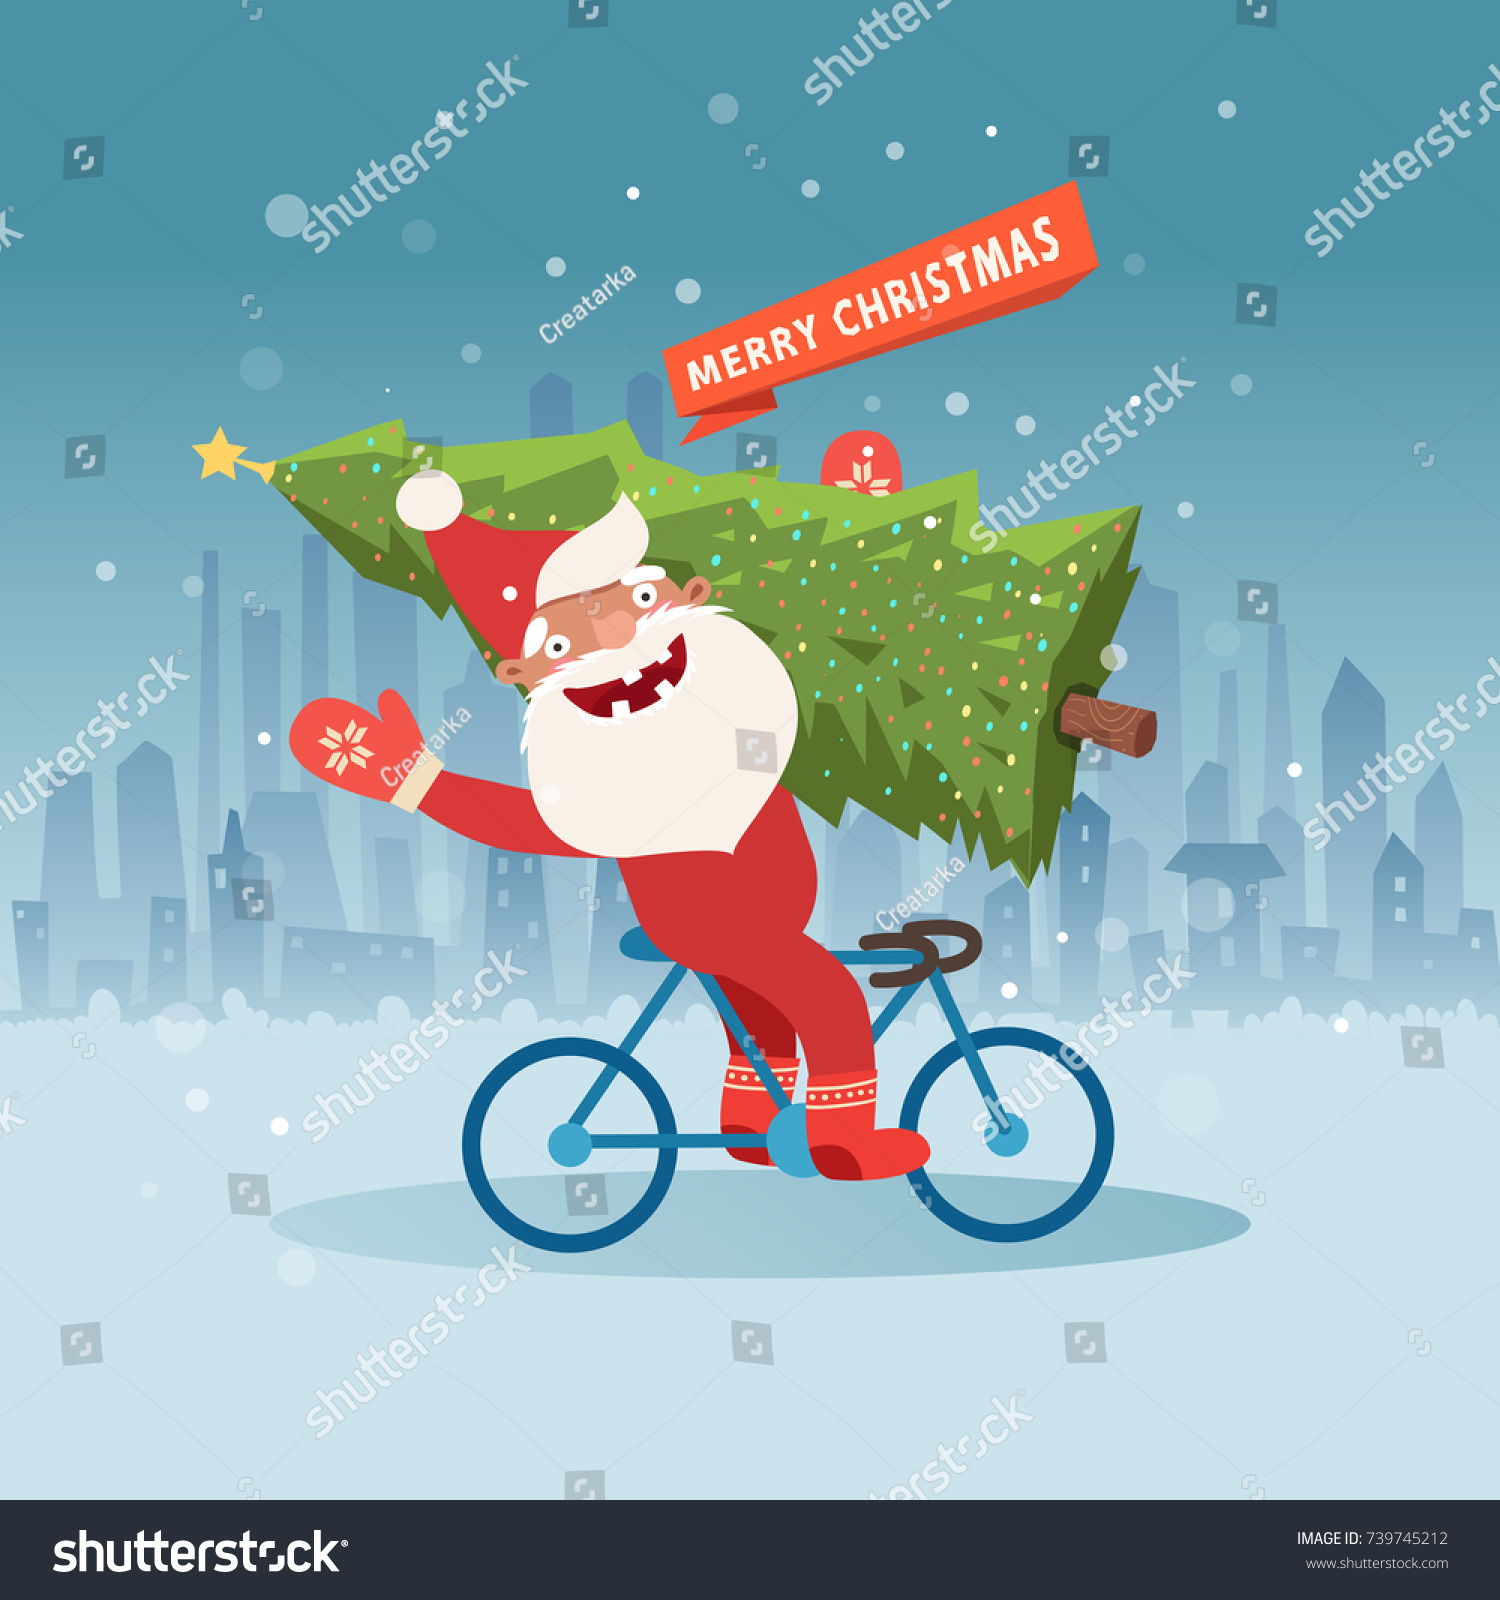 Cute Santa Claus On Bicycle Christmas Stock Vector (Royalty Free ...